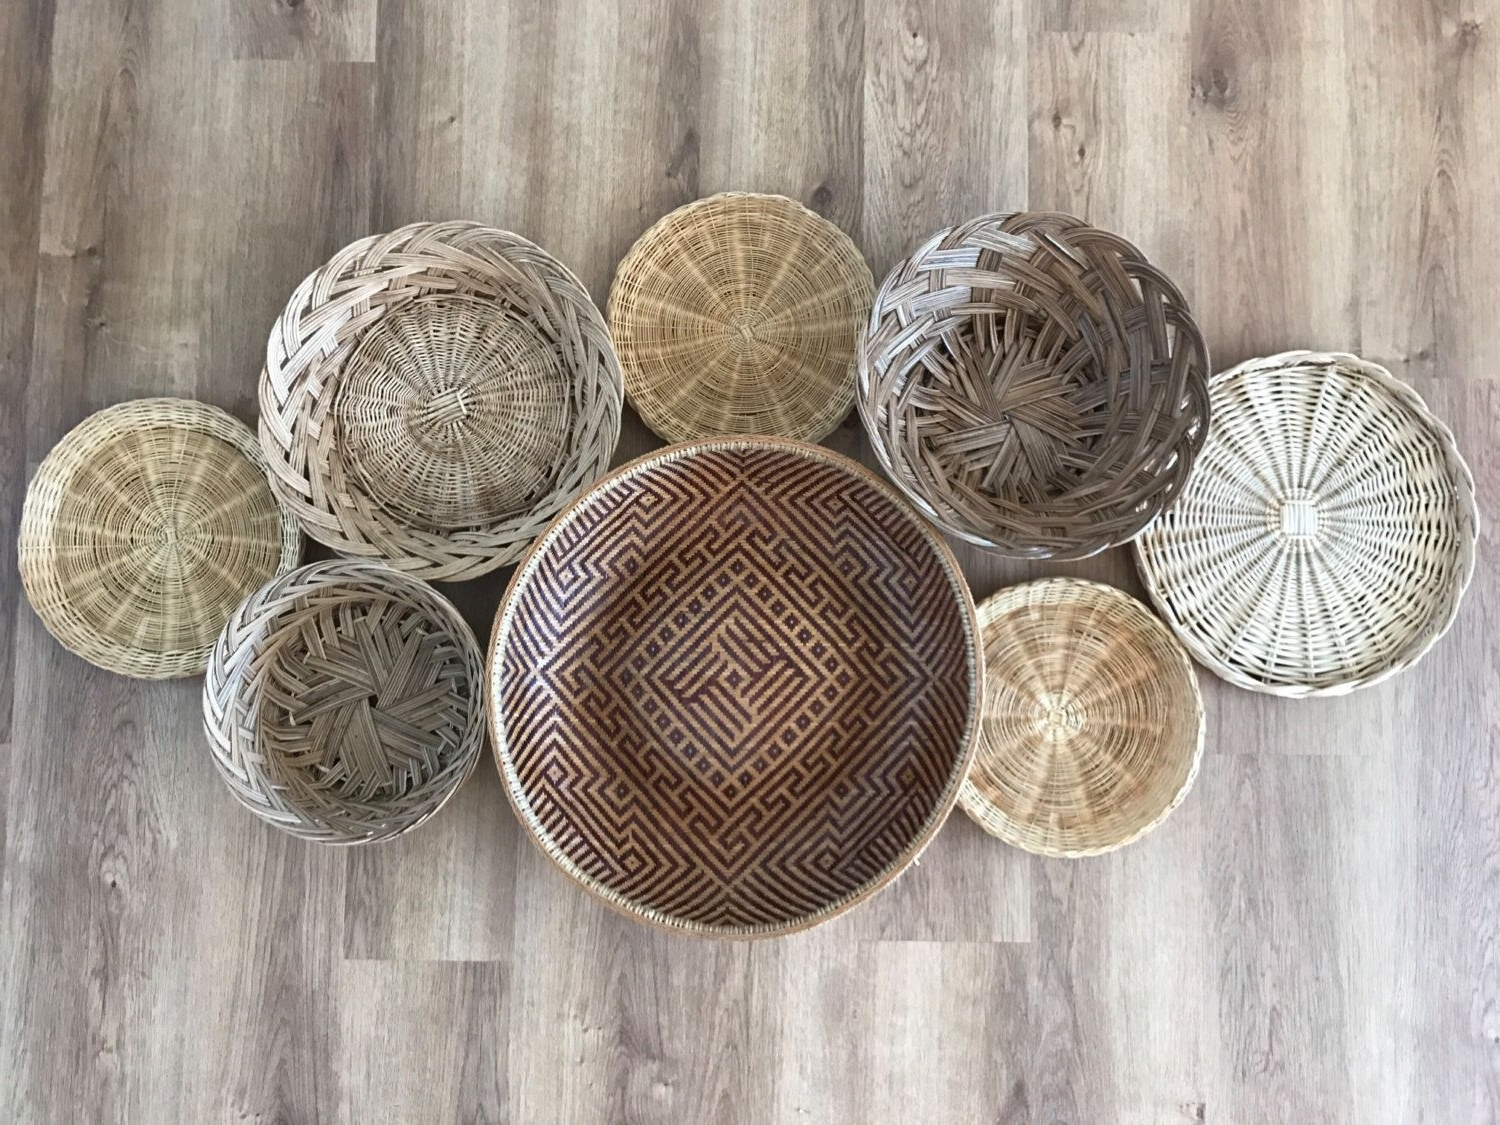 Woven Basket Wall Art In Most Popular Boho Vintage Set Of Wicker Rattan Woven Wall Hanging Baskets (View 17 of 20)